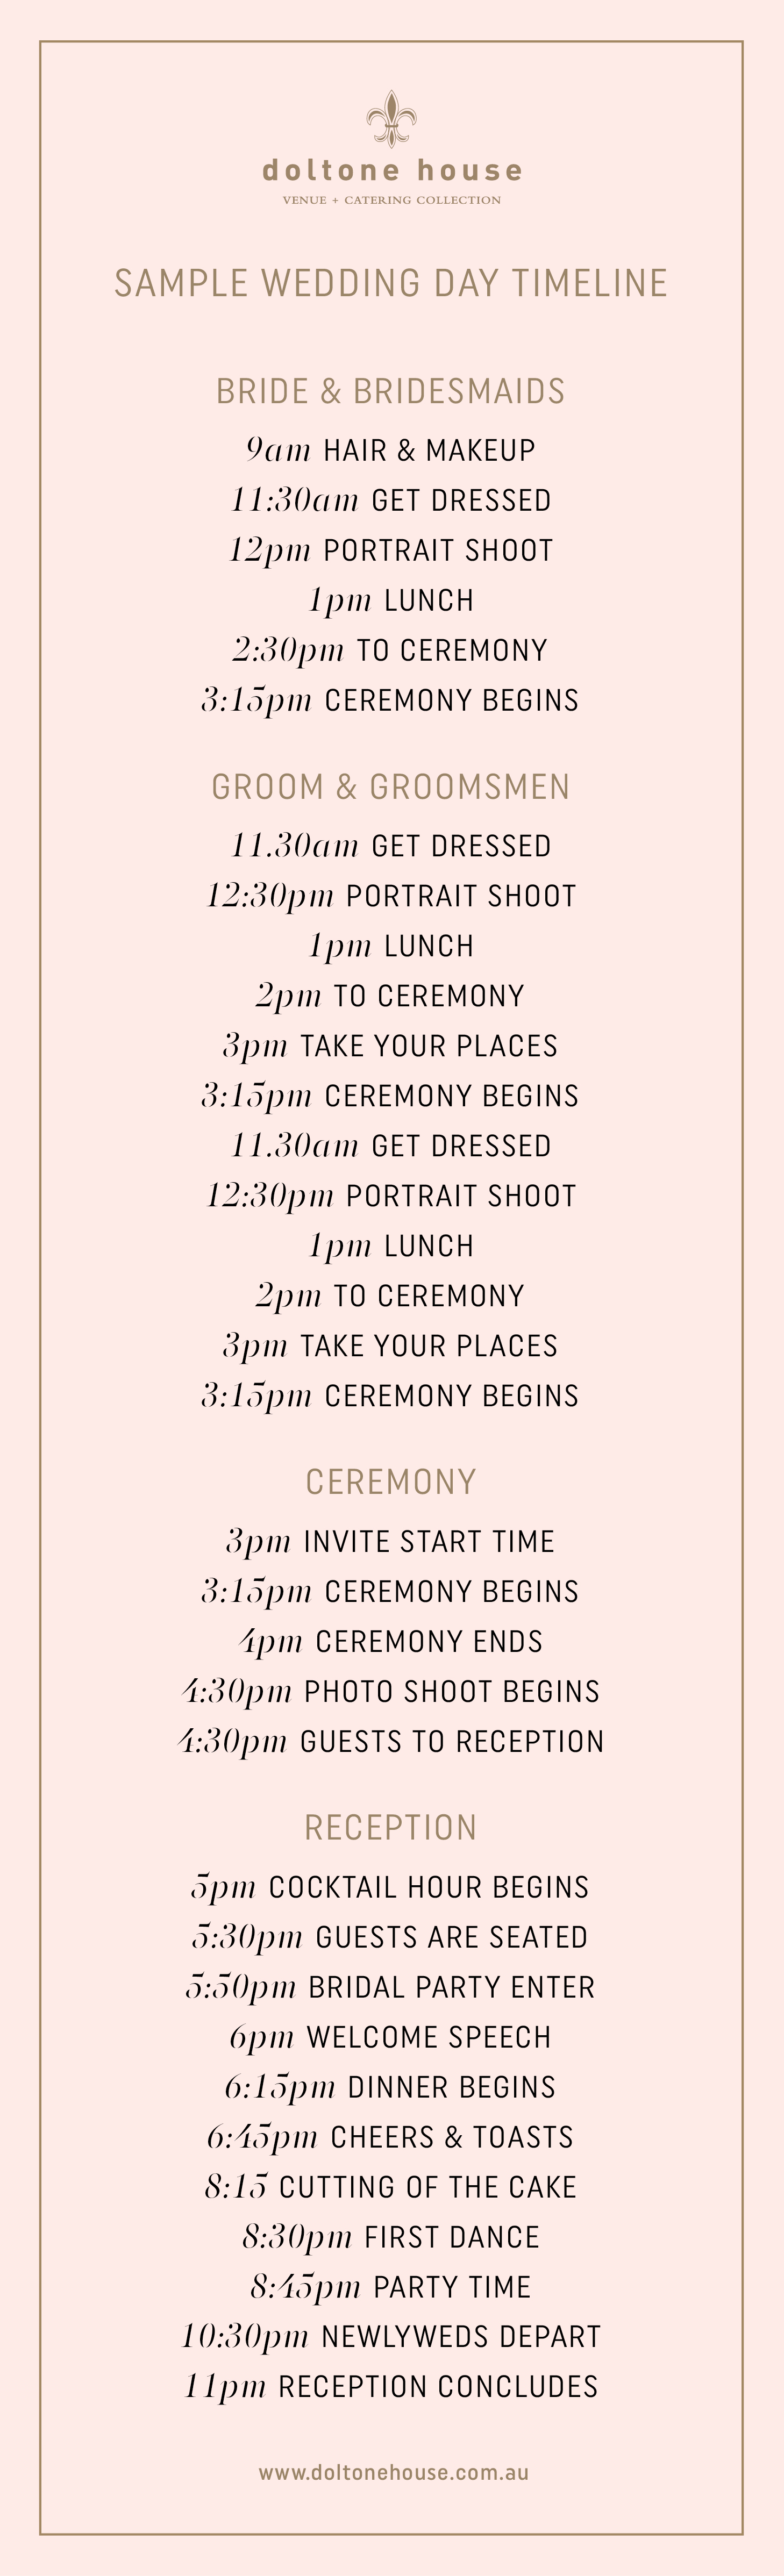 A Sample Wedding Day Timeline